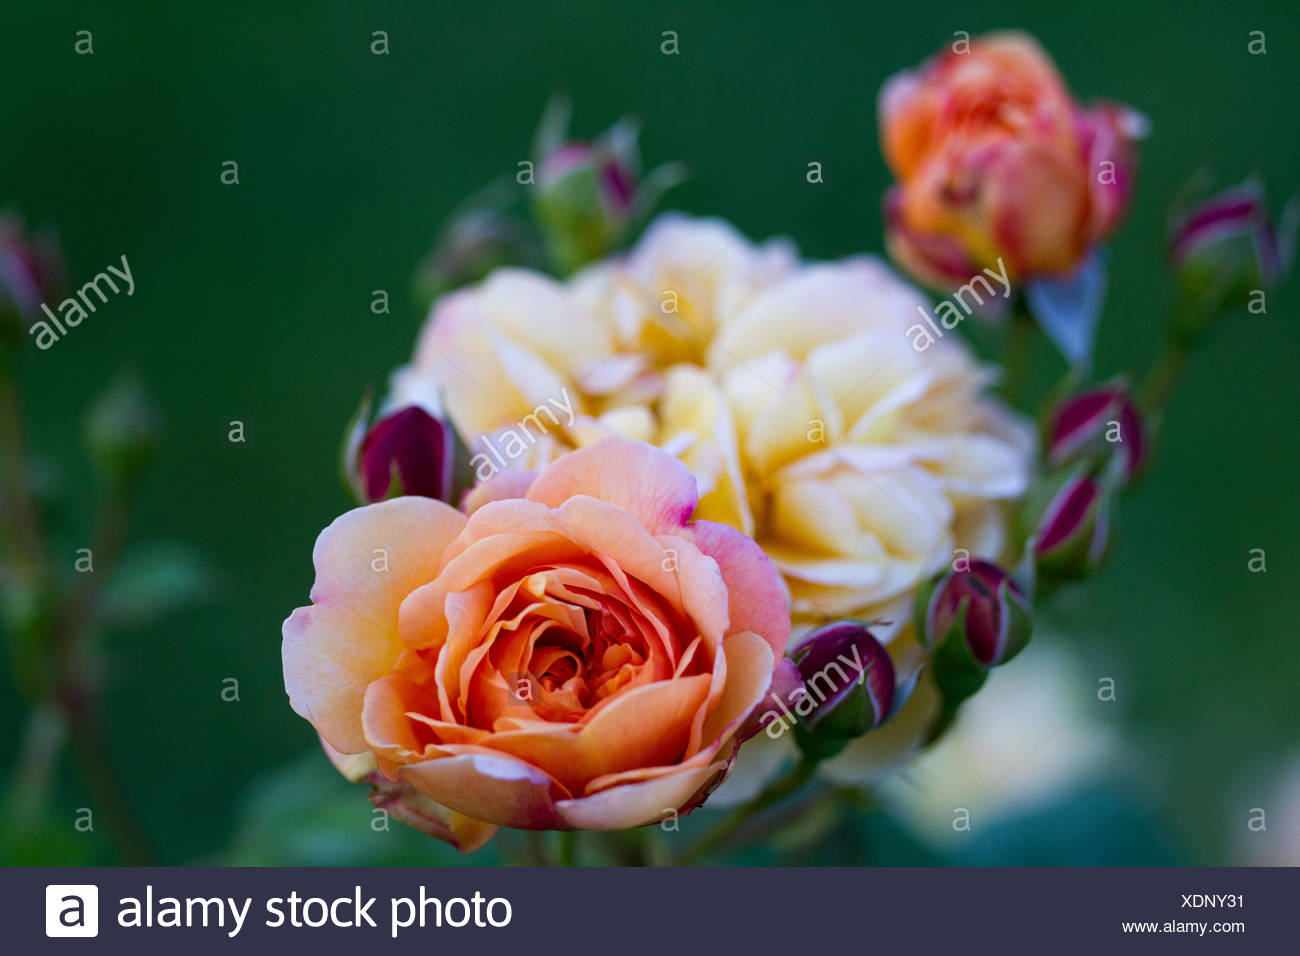 Roses of Bagatelle Stock Photo